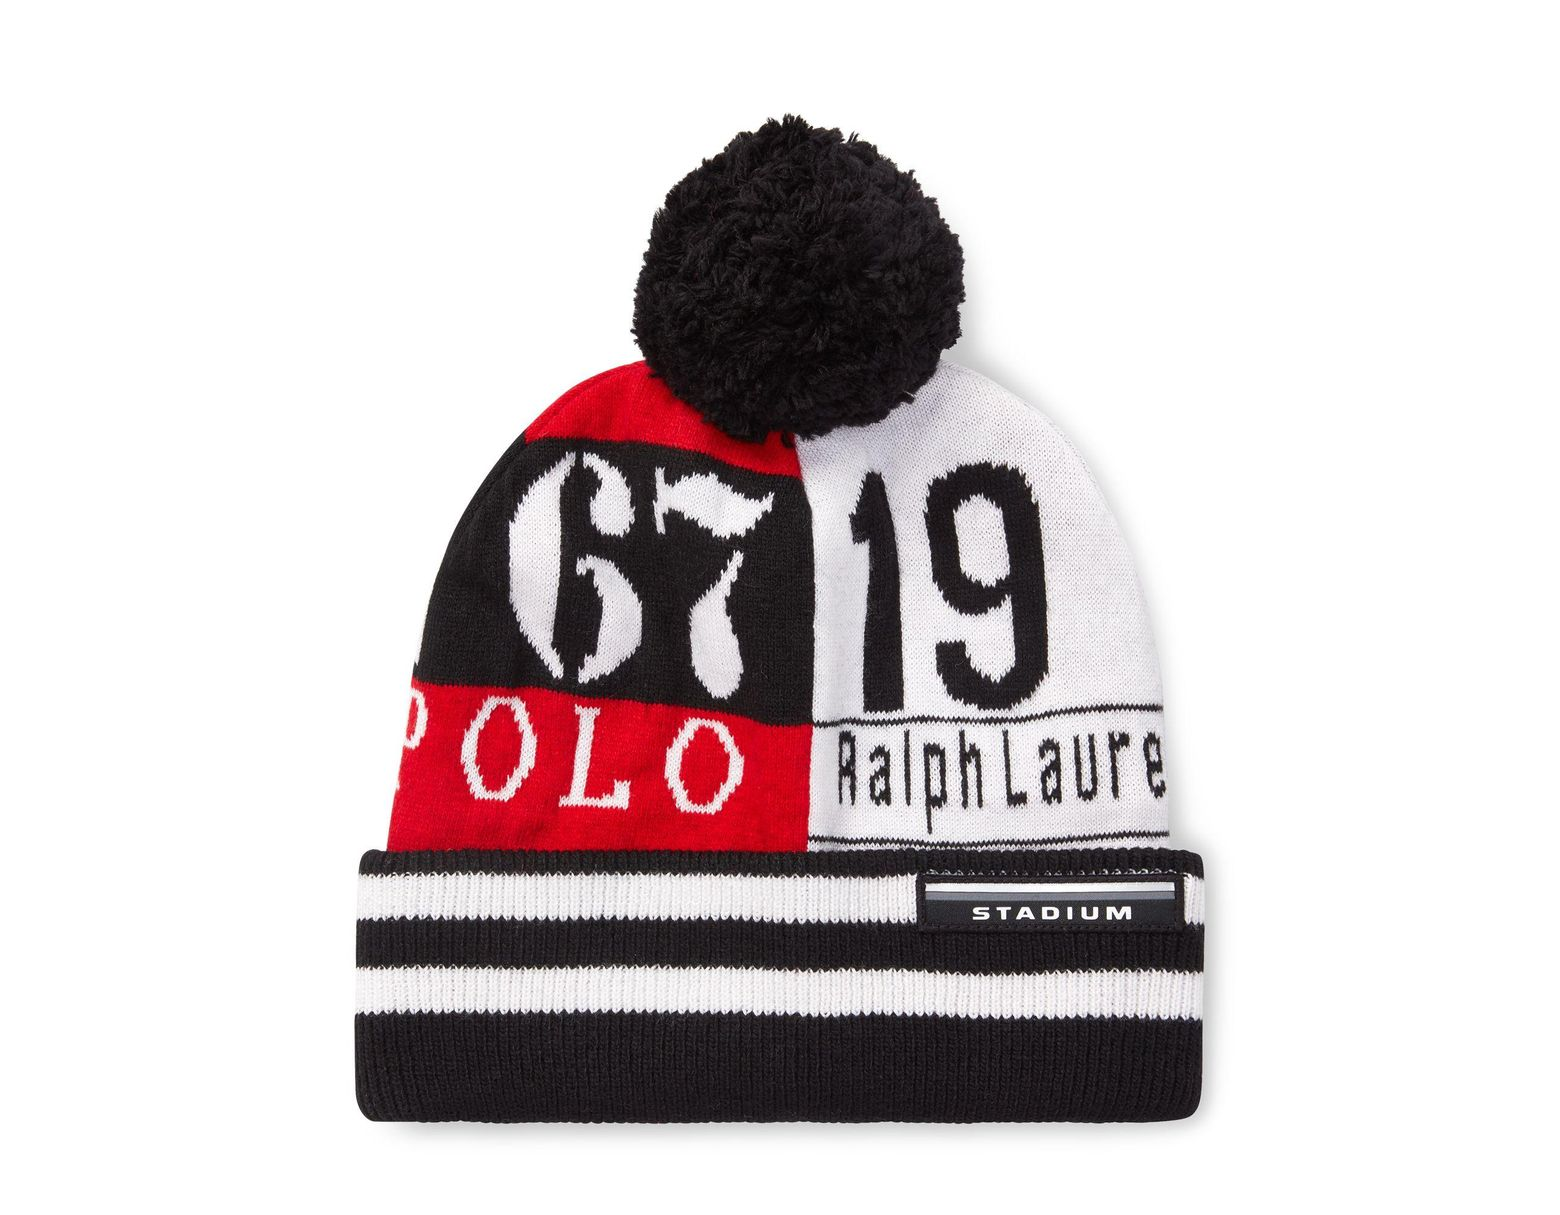 2cfa2ebe18e5c Polo Ralph Lauren Stadium Rl67 Wool-blend Hat in Red for Men - Lyst